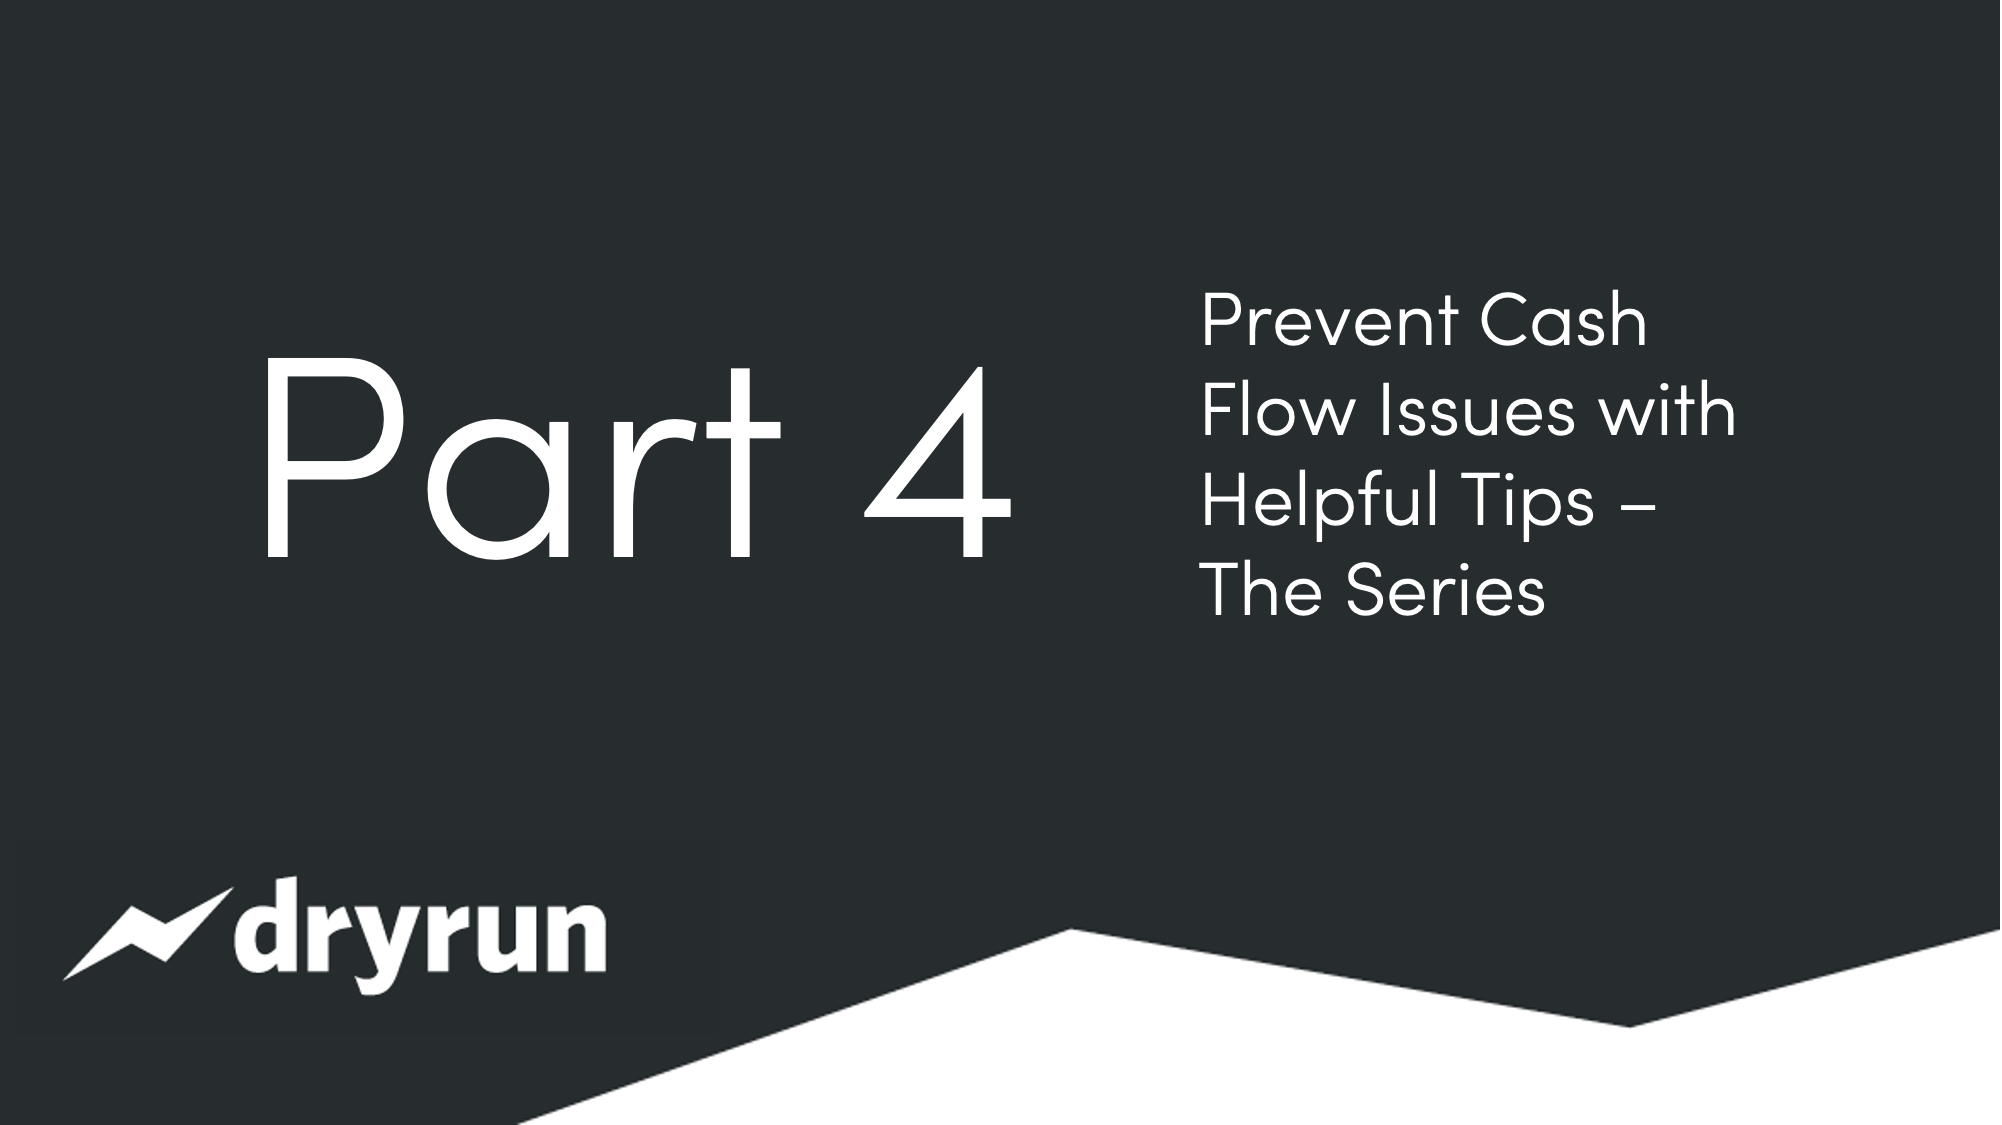 Prevent Cash Flow Issues with Helpful Tips - Part 4